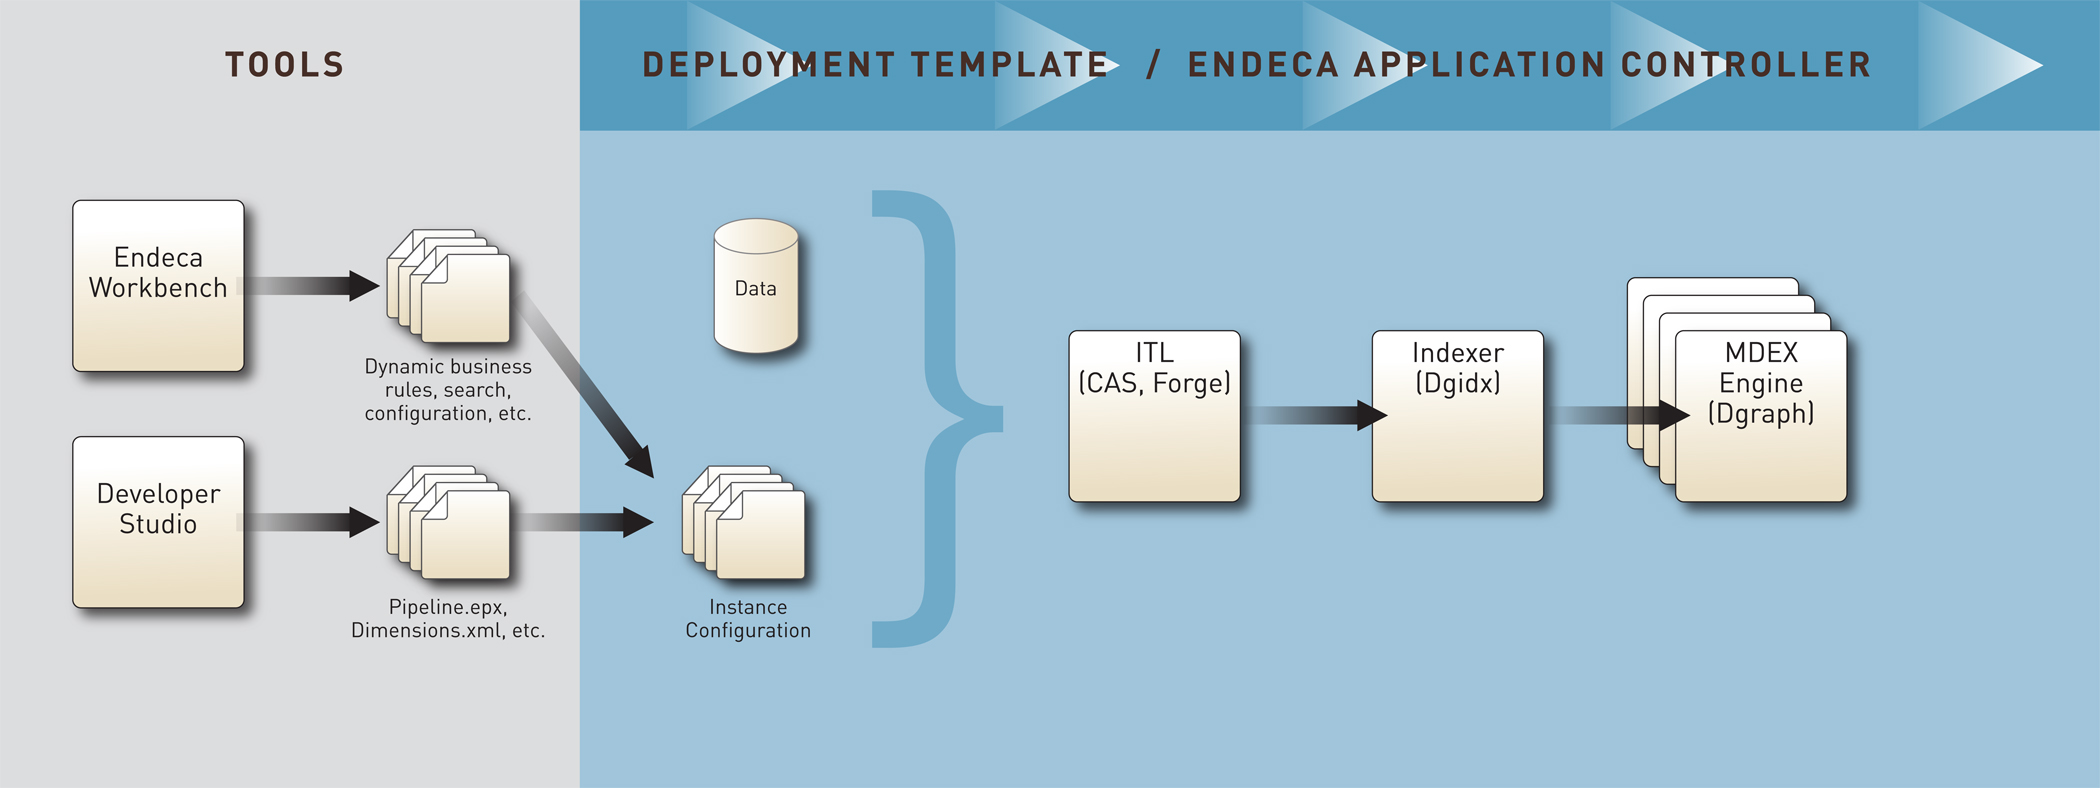 Data And Configuration Workflow Circuit Diagram Xml In This The Environment Includes Endeca Workbench Which Allows Business Users To Change Rules Search Thesaurus Other